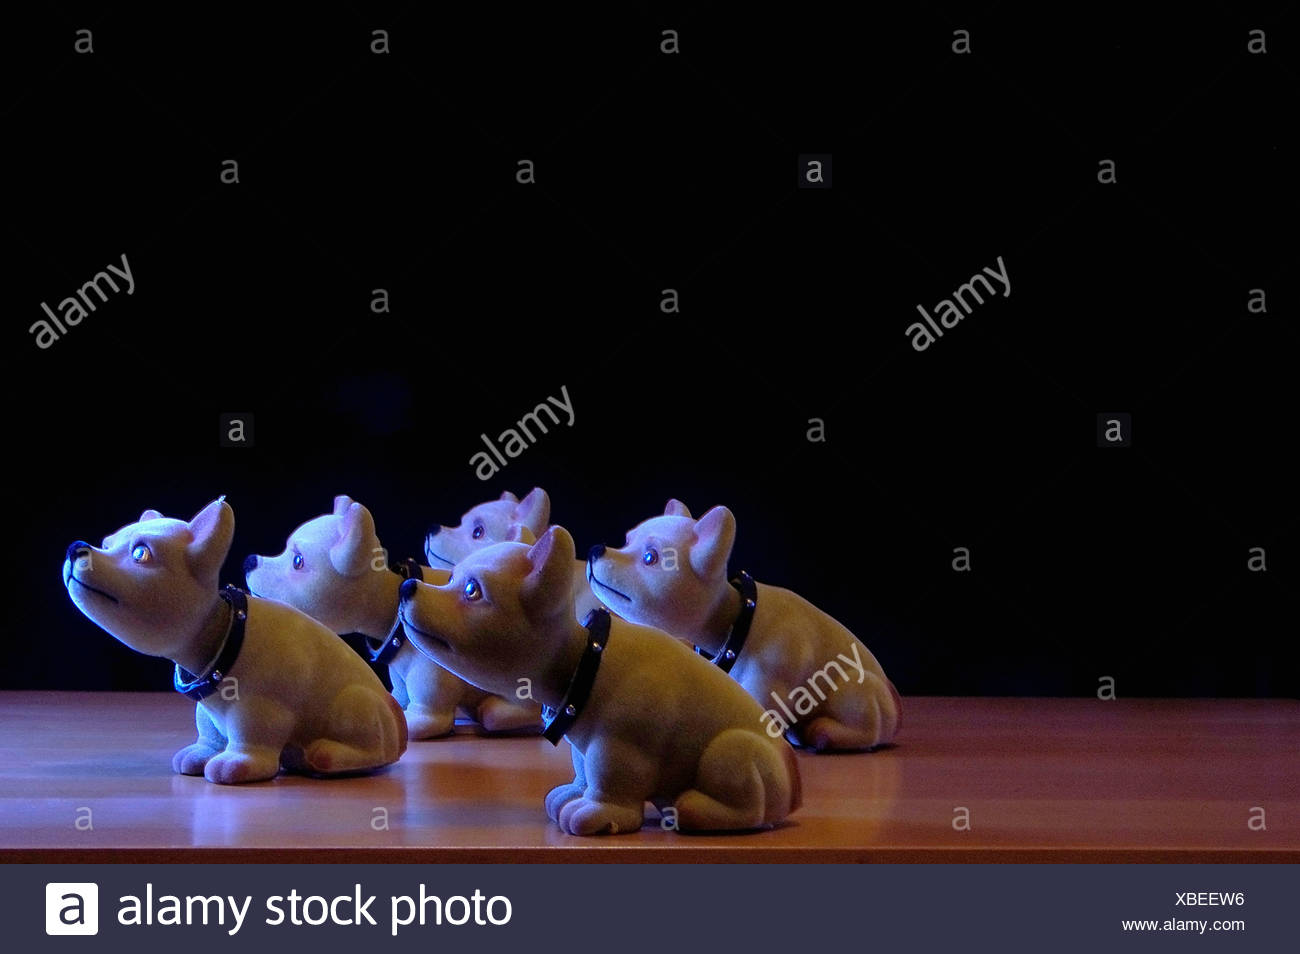 Still life with five toy dogs - Stock Image